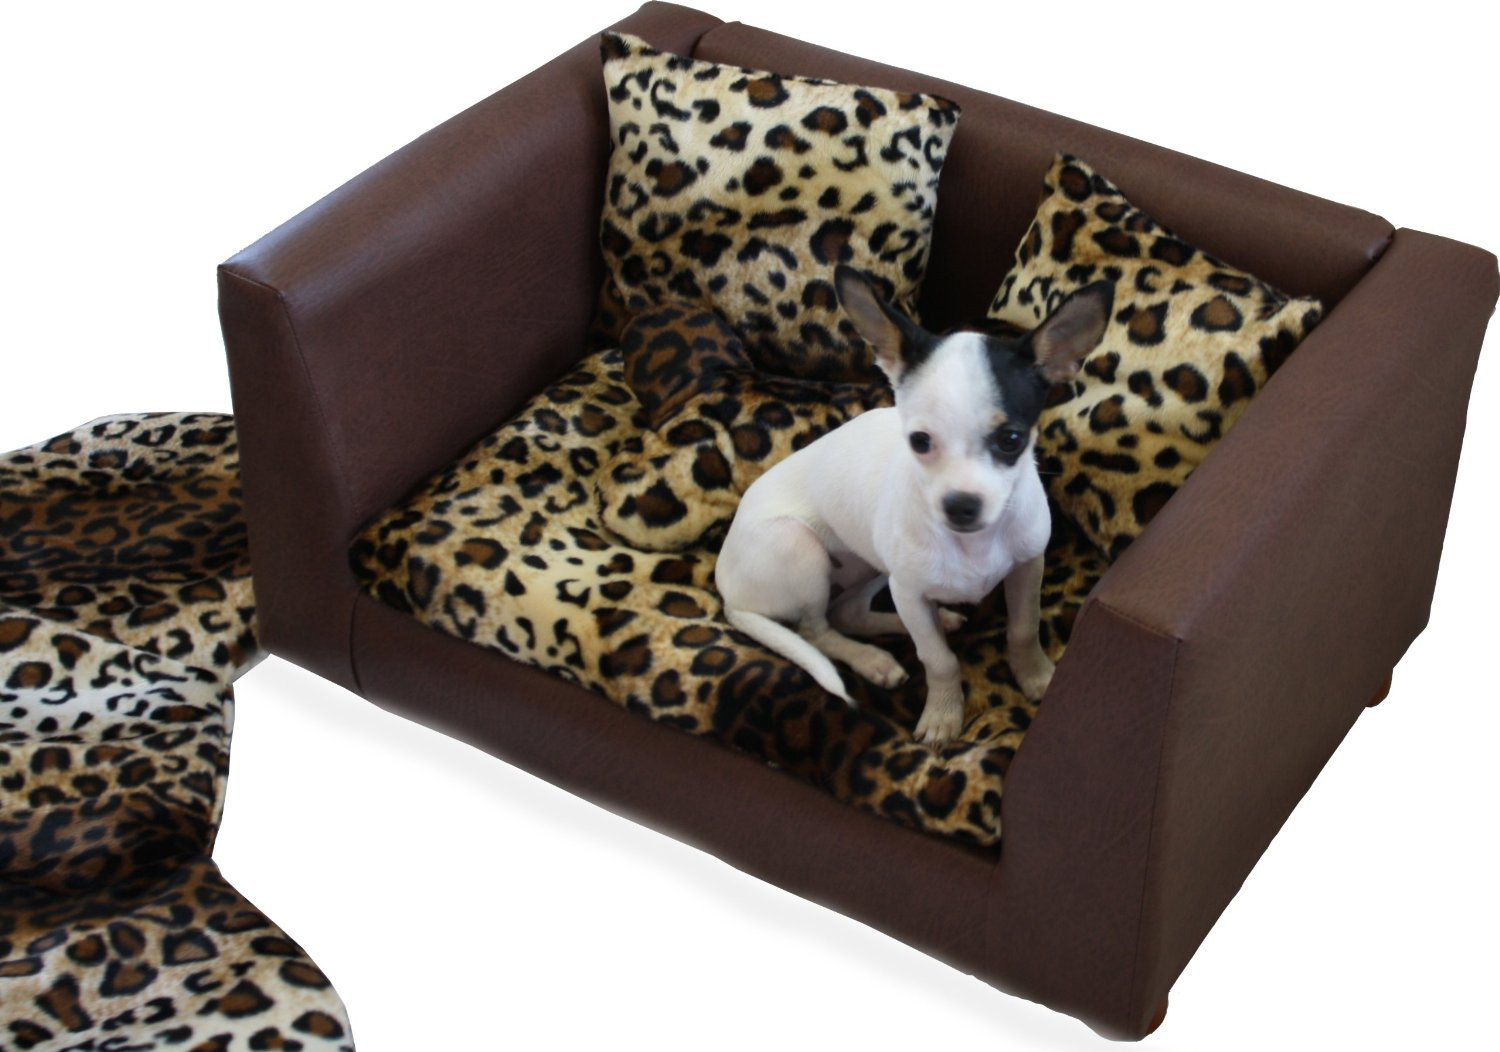 Leopard Print Sofa Appears Furniture Set Design Total Fab Luxury And Designer Dog Beds For Small Large Dogs